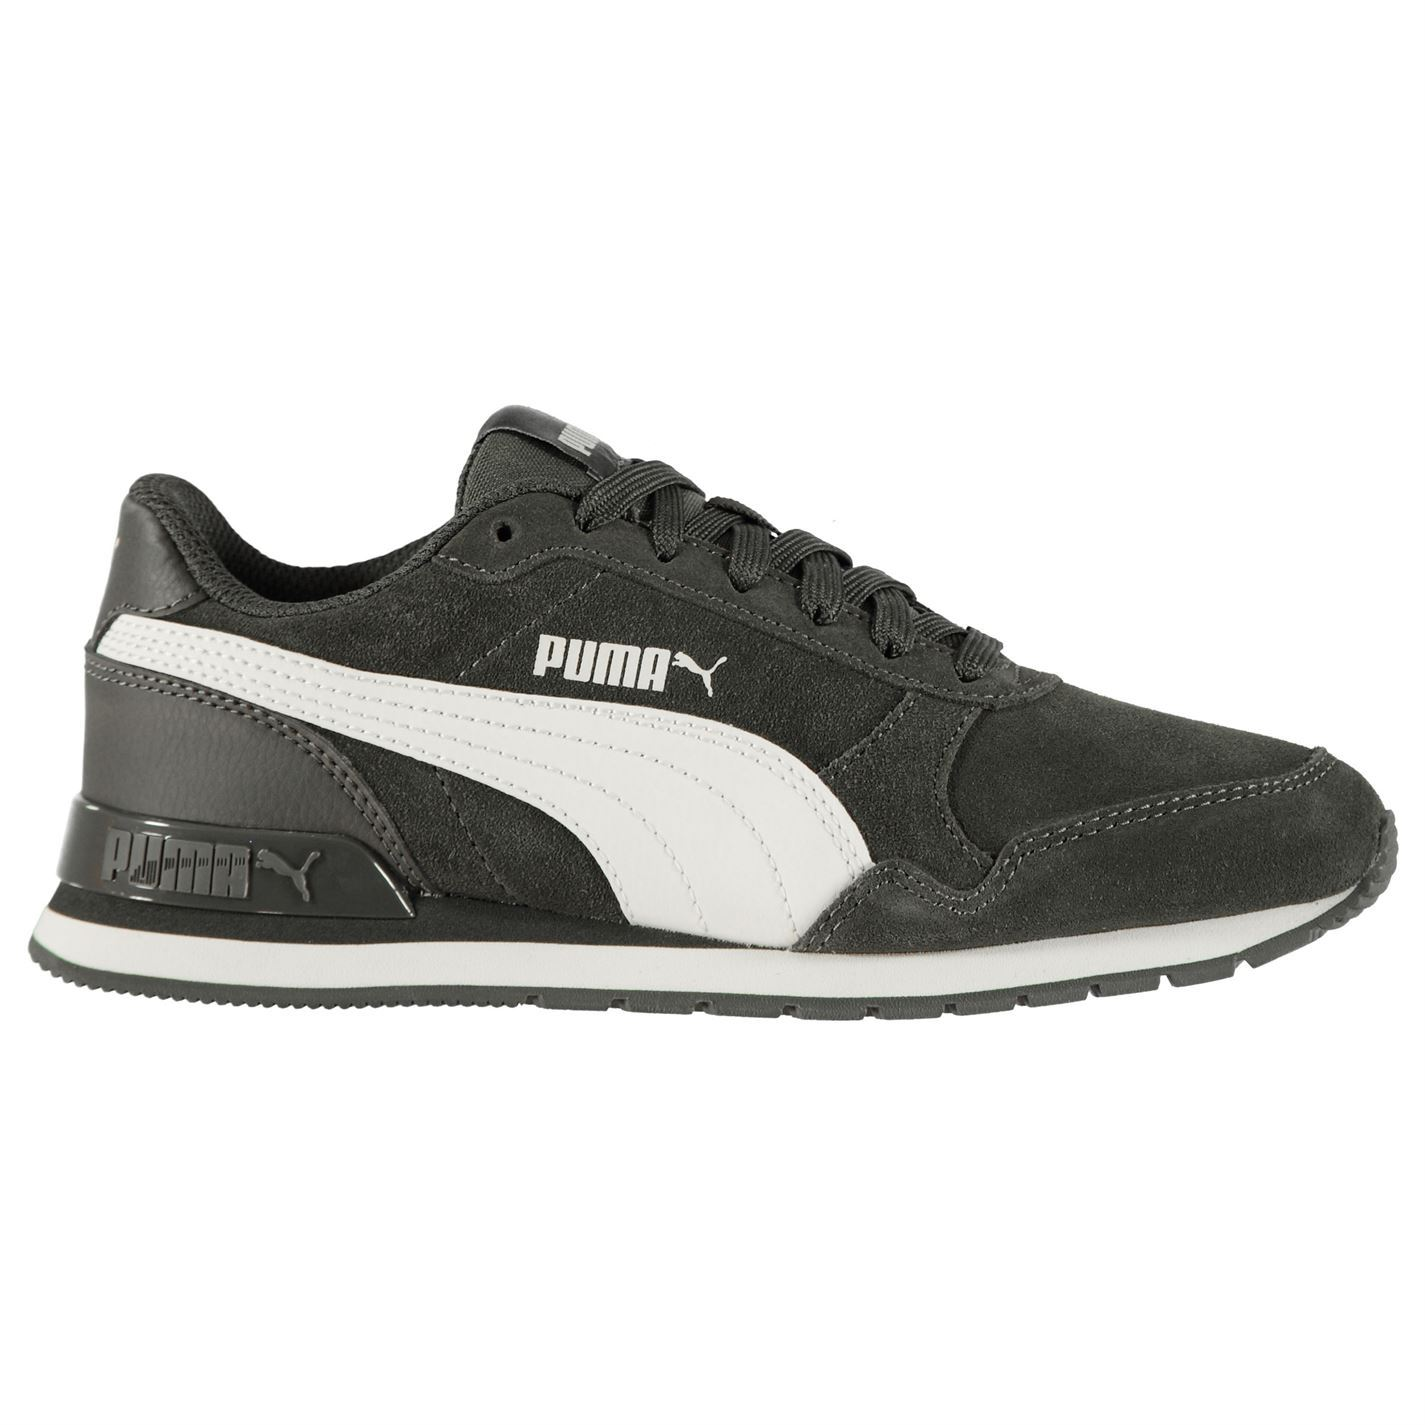 Details about Puma ST Runner v2 Suede Trainers Juniors Boys Shoes Sneakers Kids Footwear